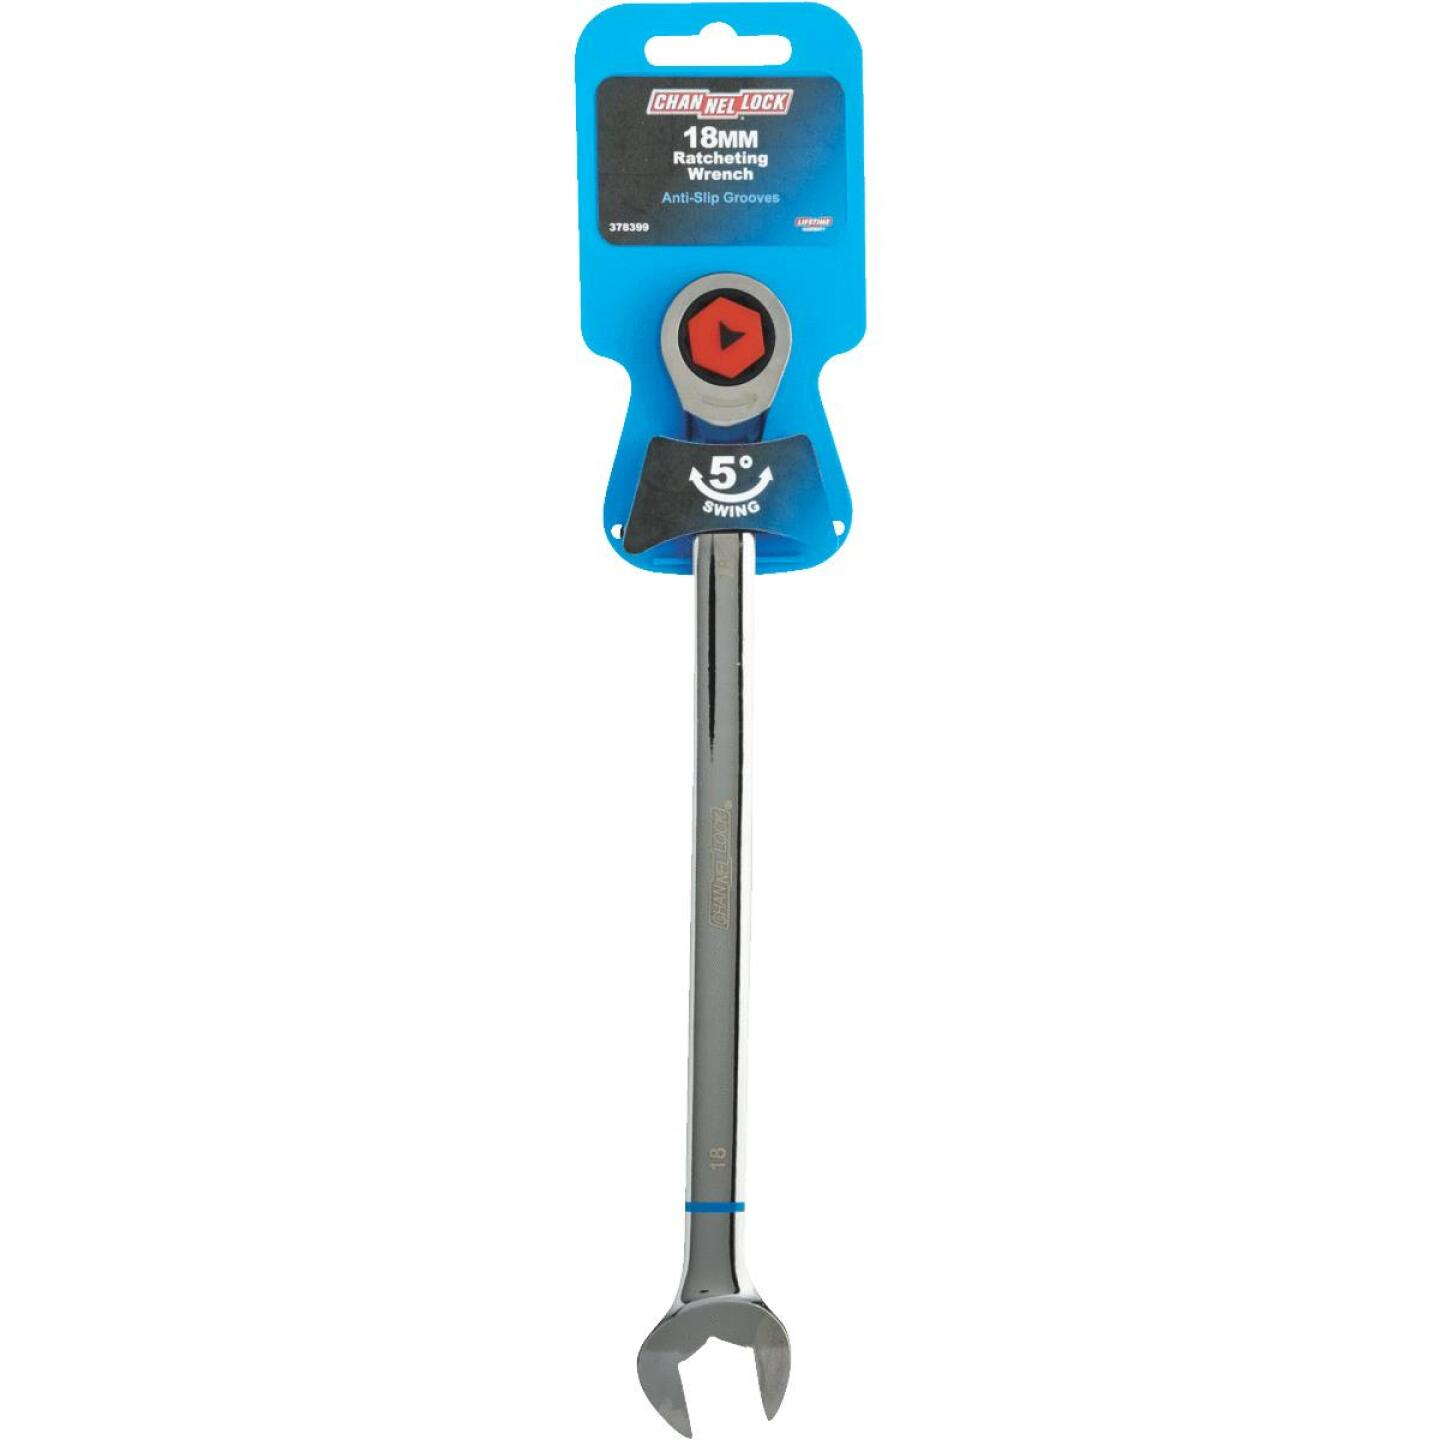 Channellock Metric 18 mm 12-Point Ratcheting Combination Wrench Image 2